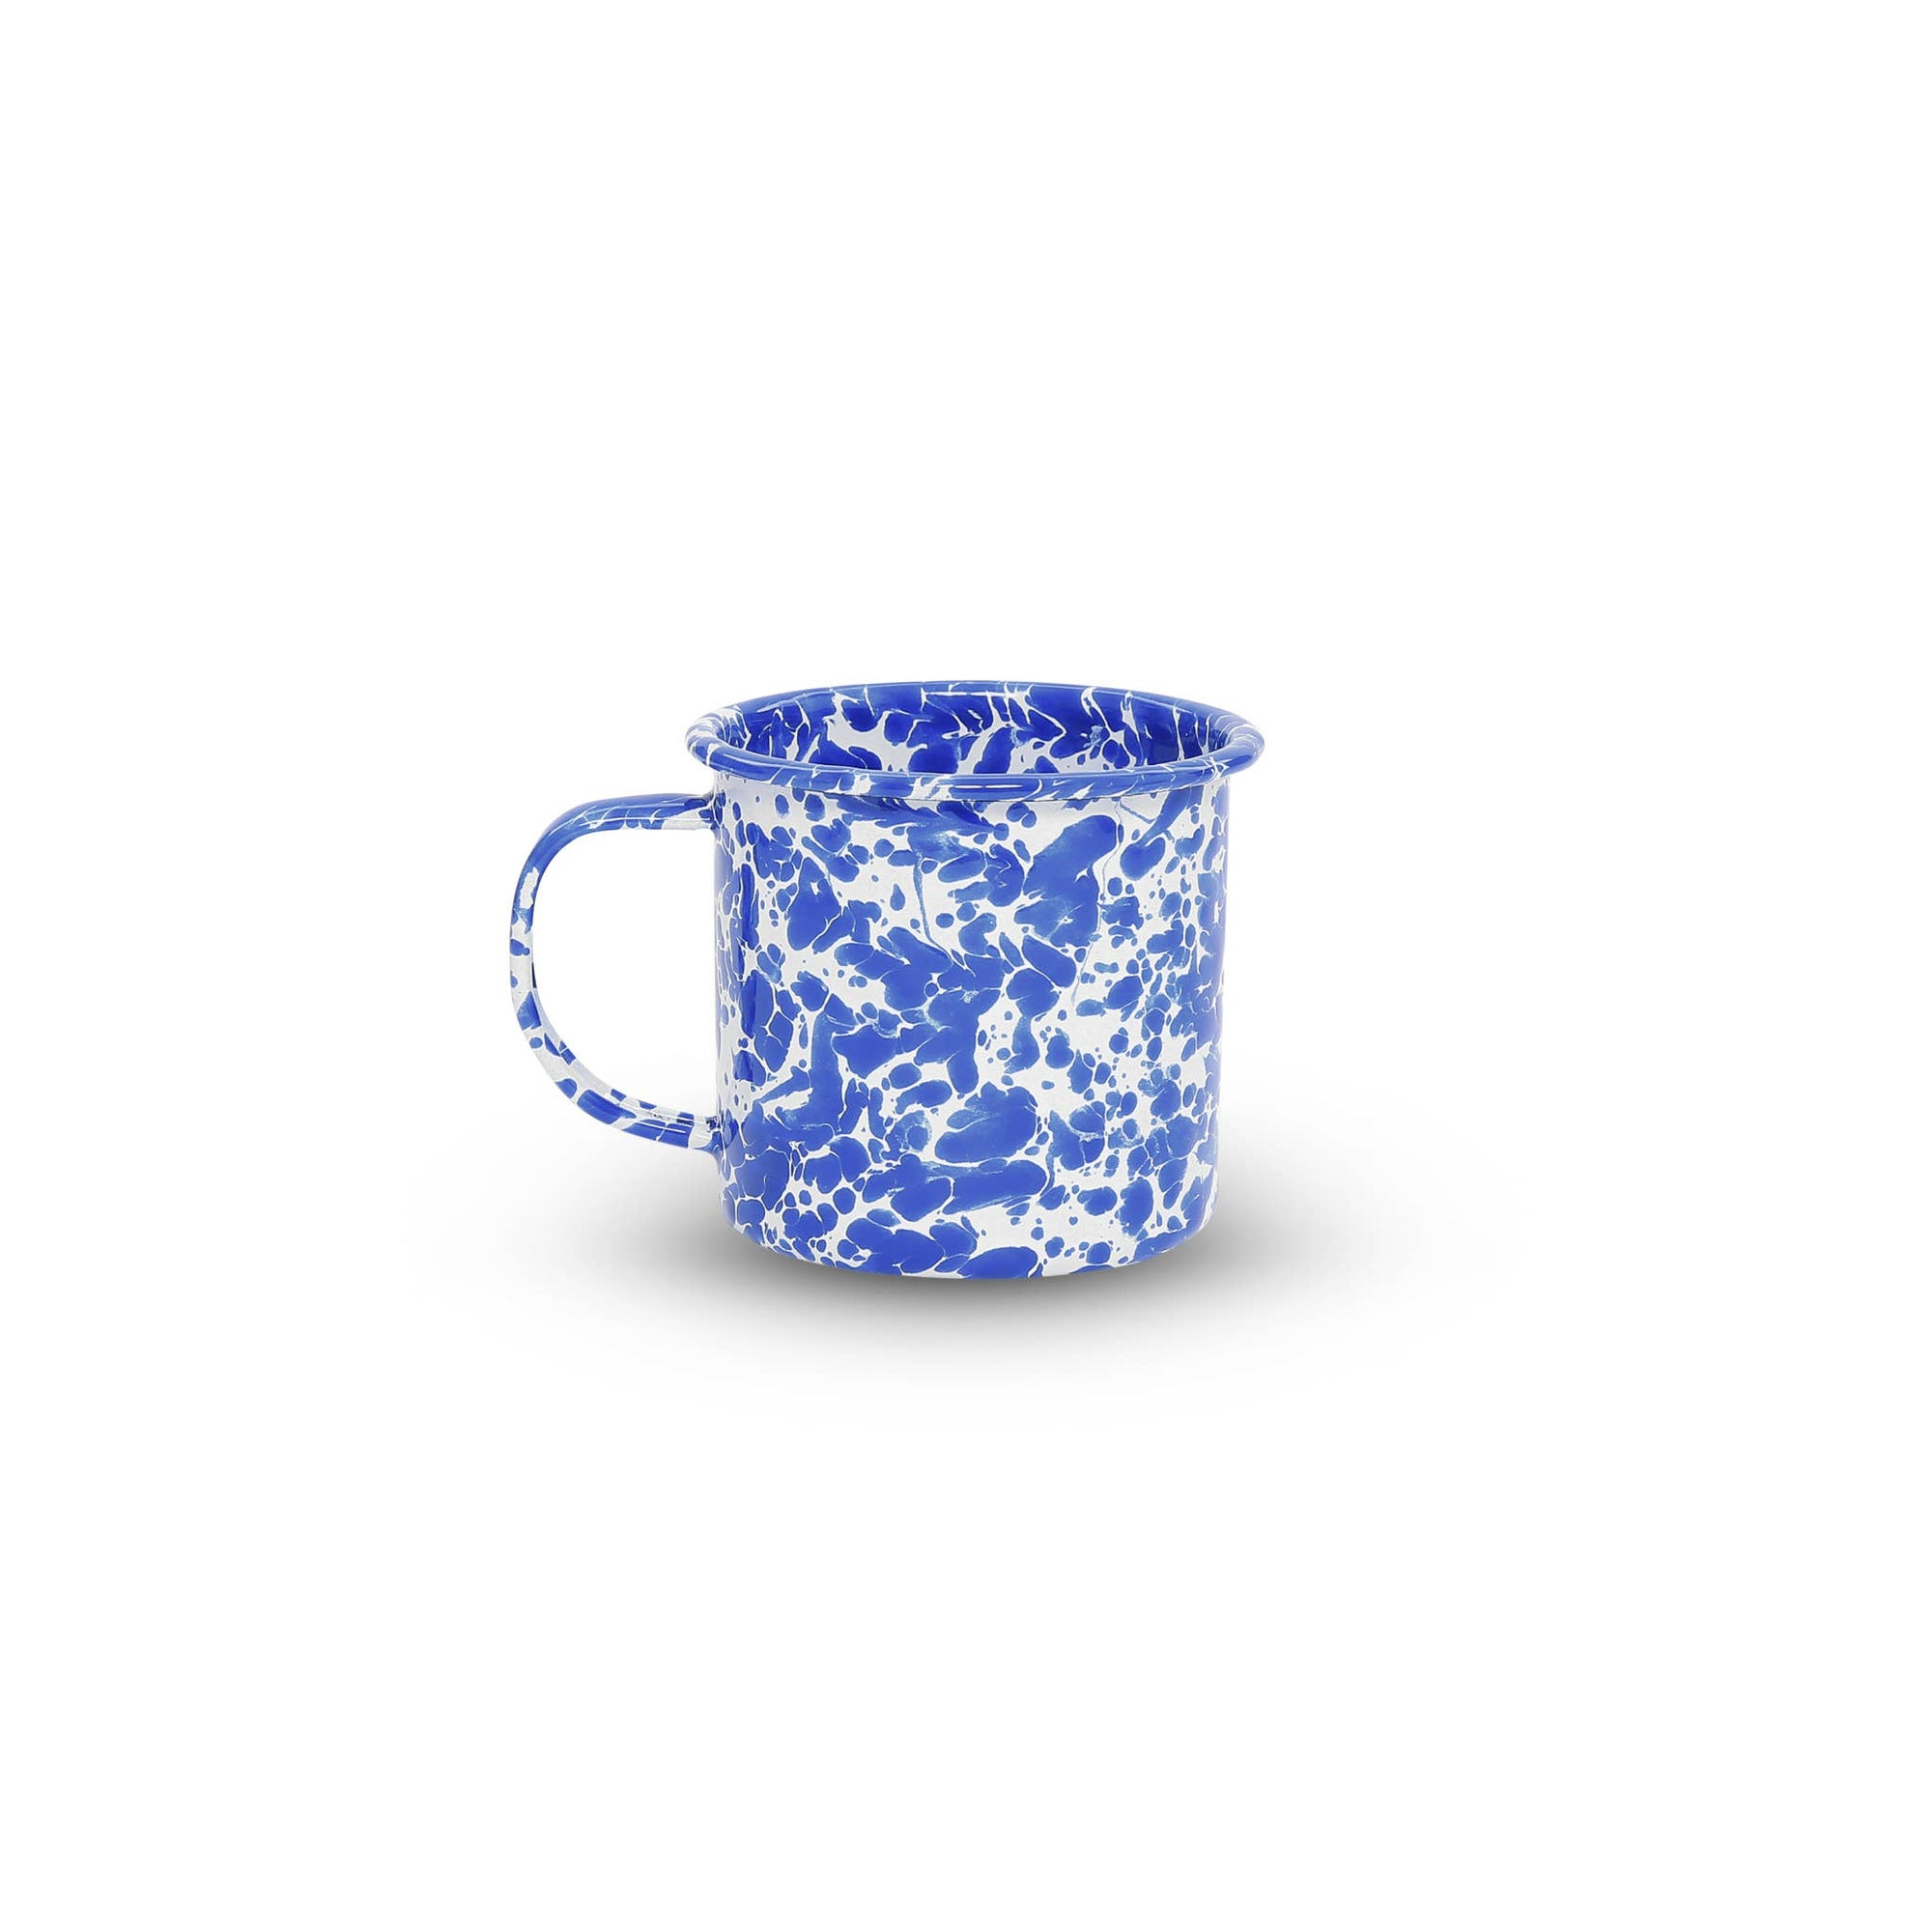 Crow Canyon Home - Splatterware - Mug 12 oz